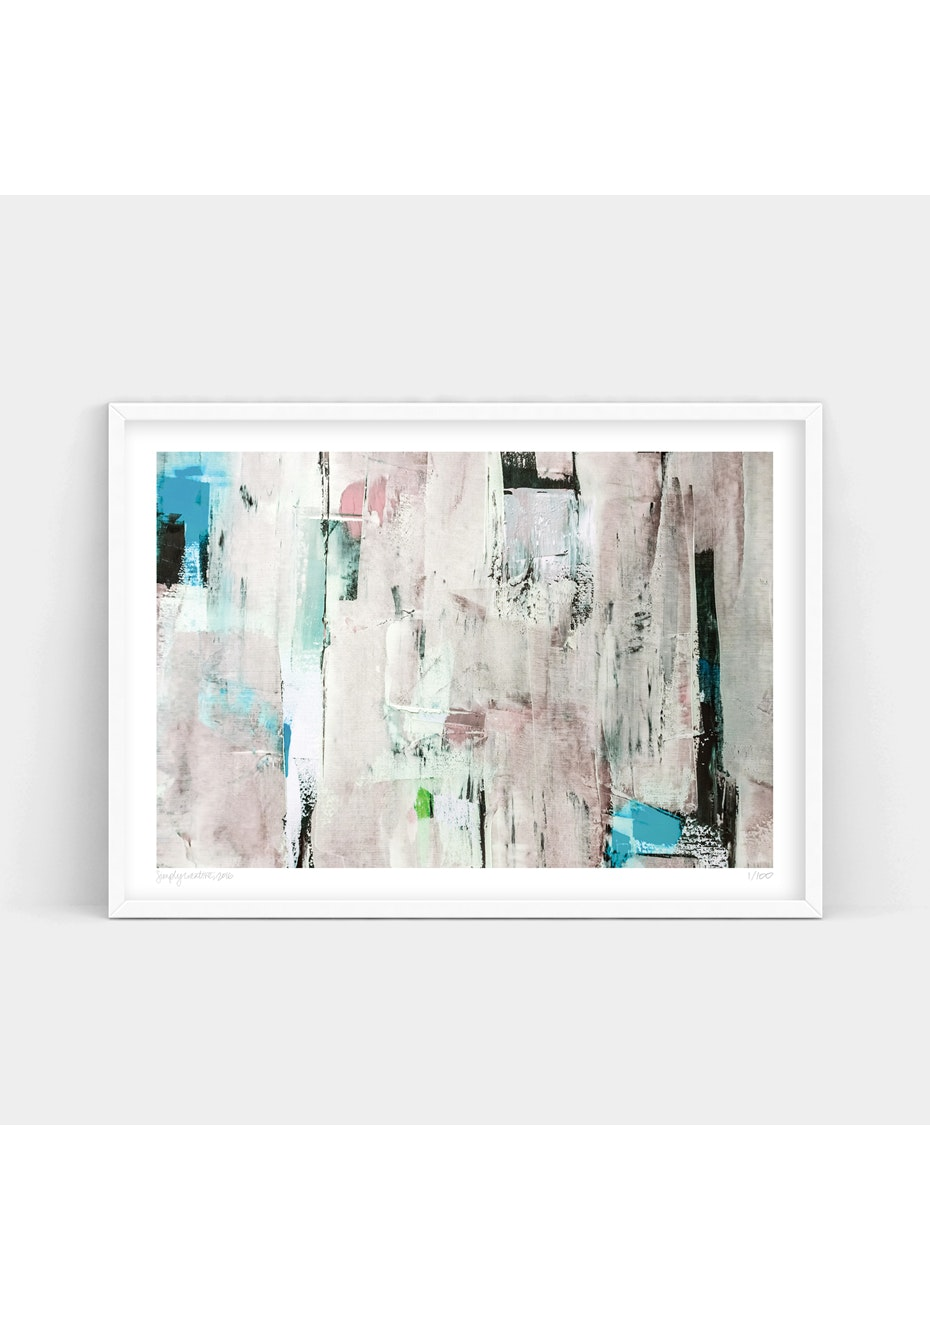 Simply Creative - Neutral - A1 Colour Limited Edition Print